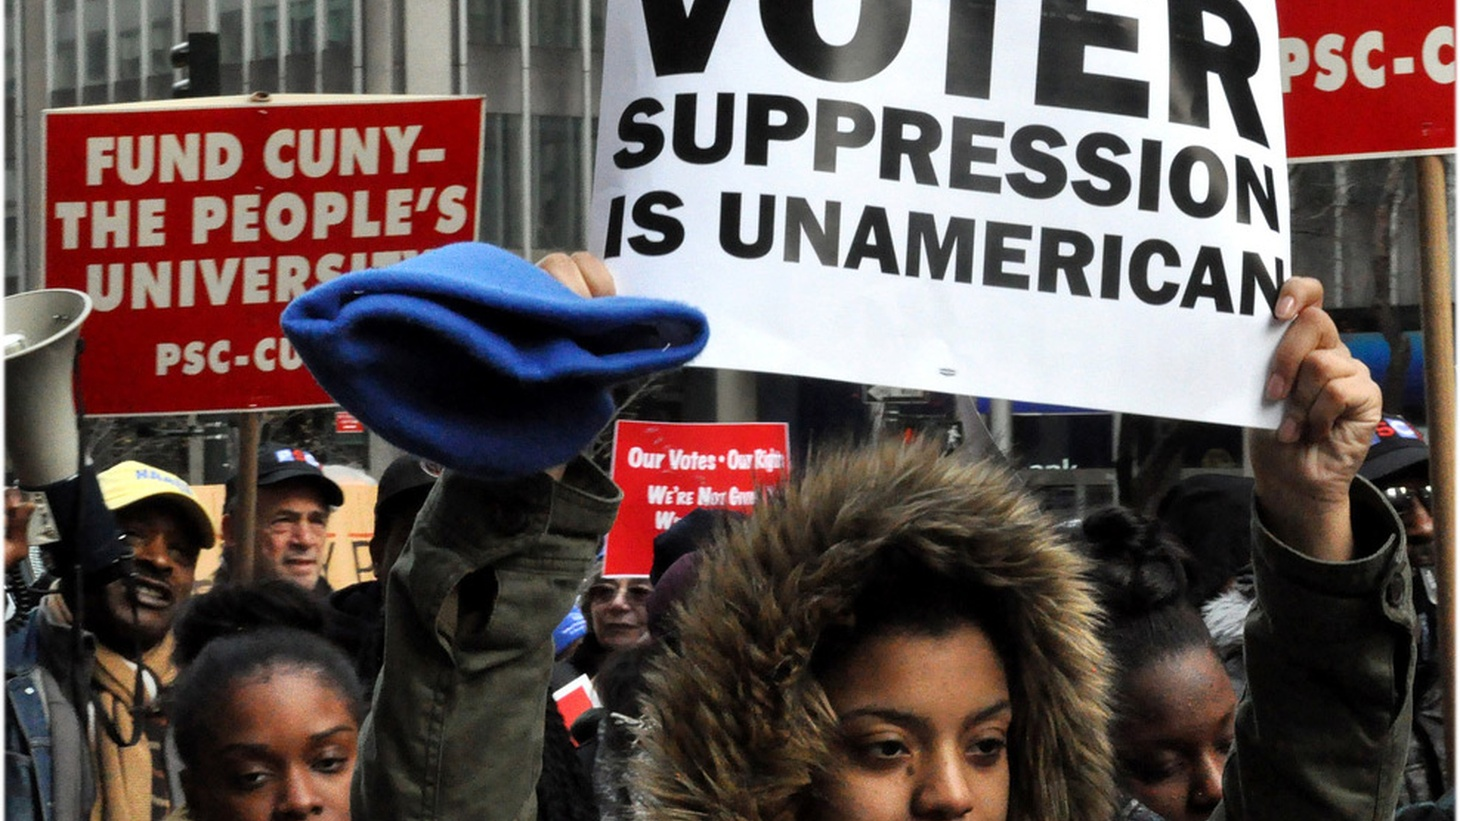 Voting may be the lynchpin of democracy, but it's not a right guaranteed by the Constitution. The Founding Fathers set the stage for the dirty tricks and legal discrimination we see today.